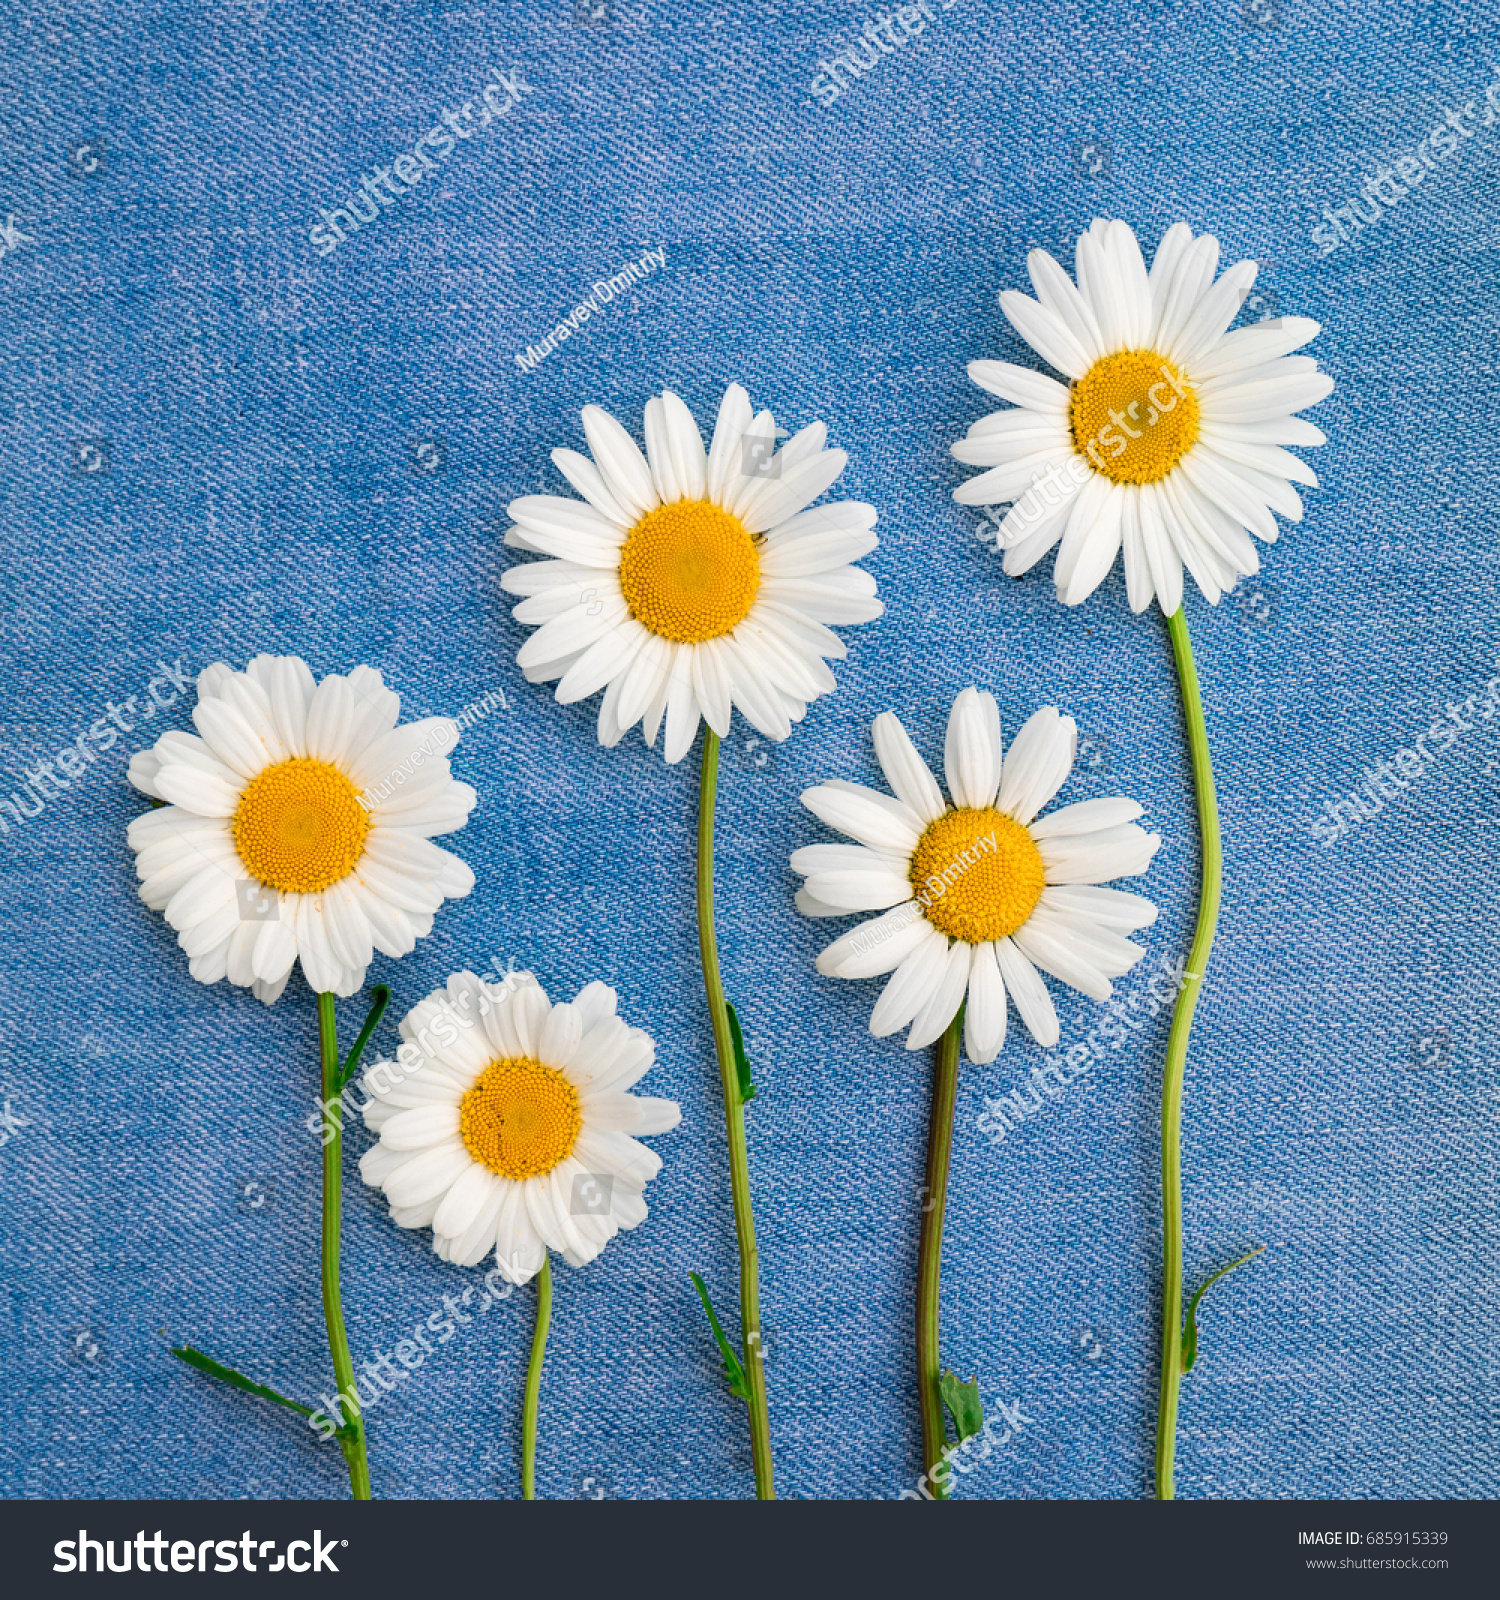 Composition Five Daisies Flowers Blue Denim Stock Photo Royalty